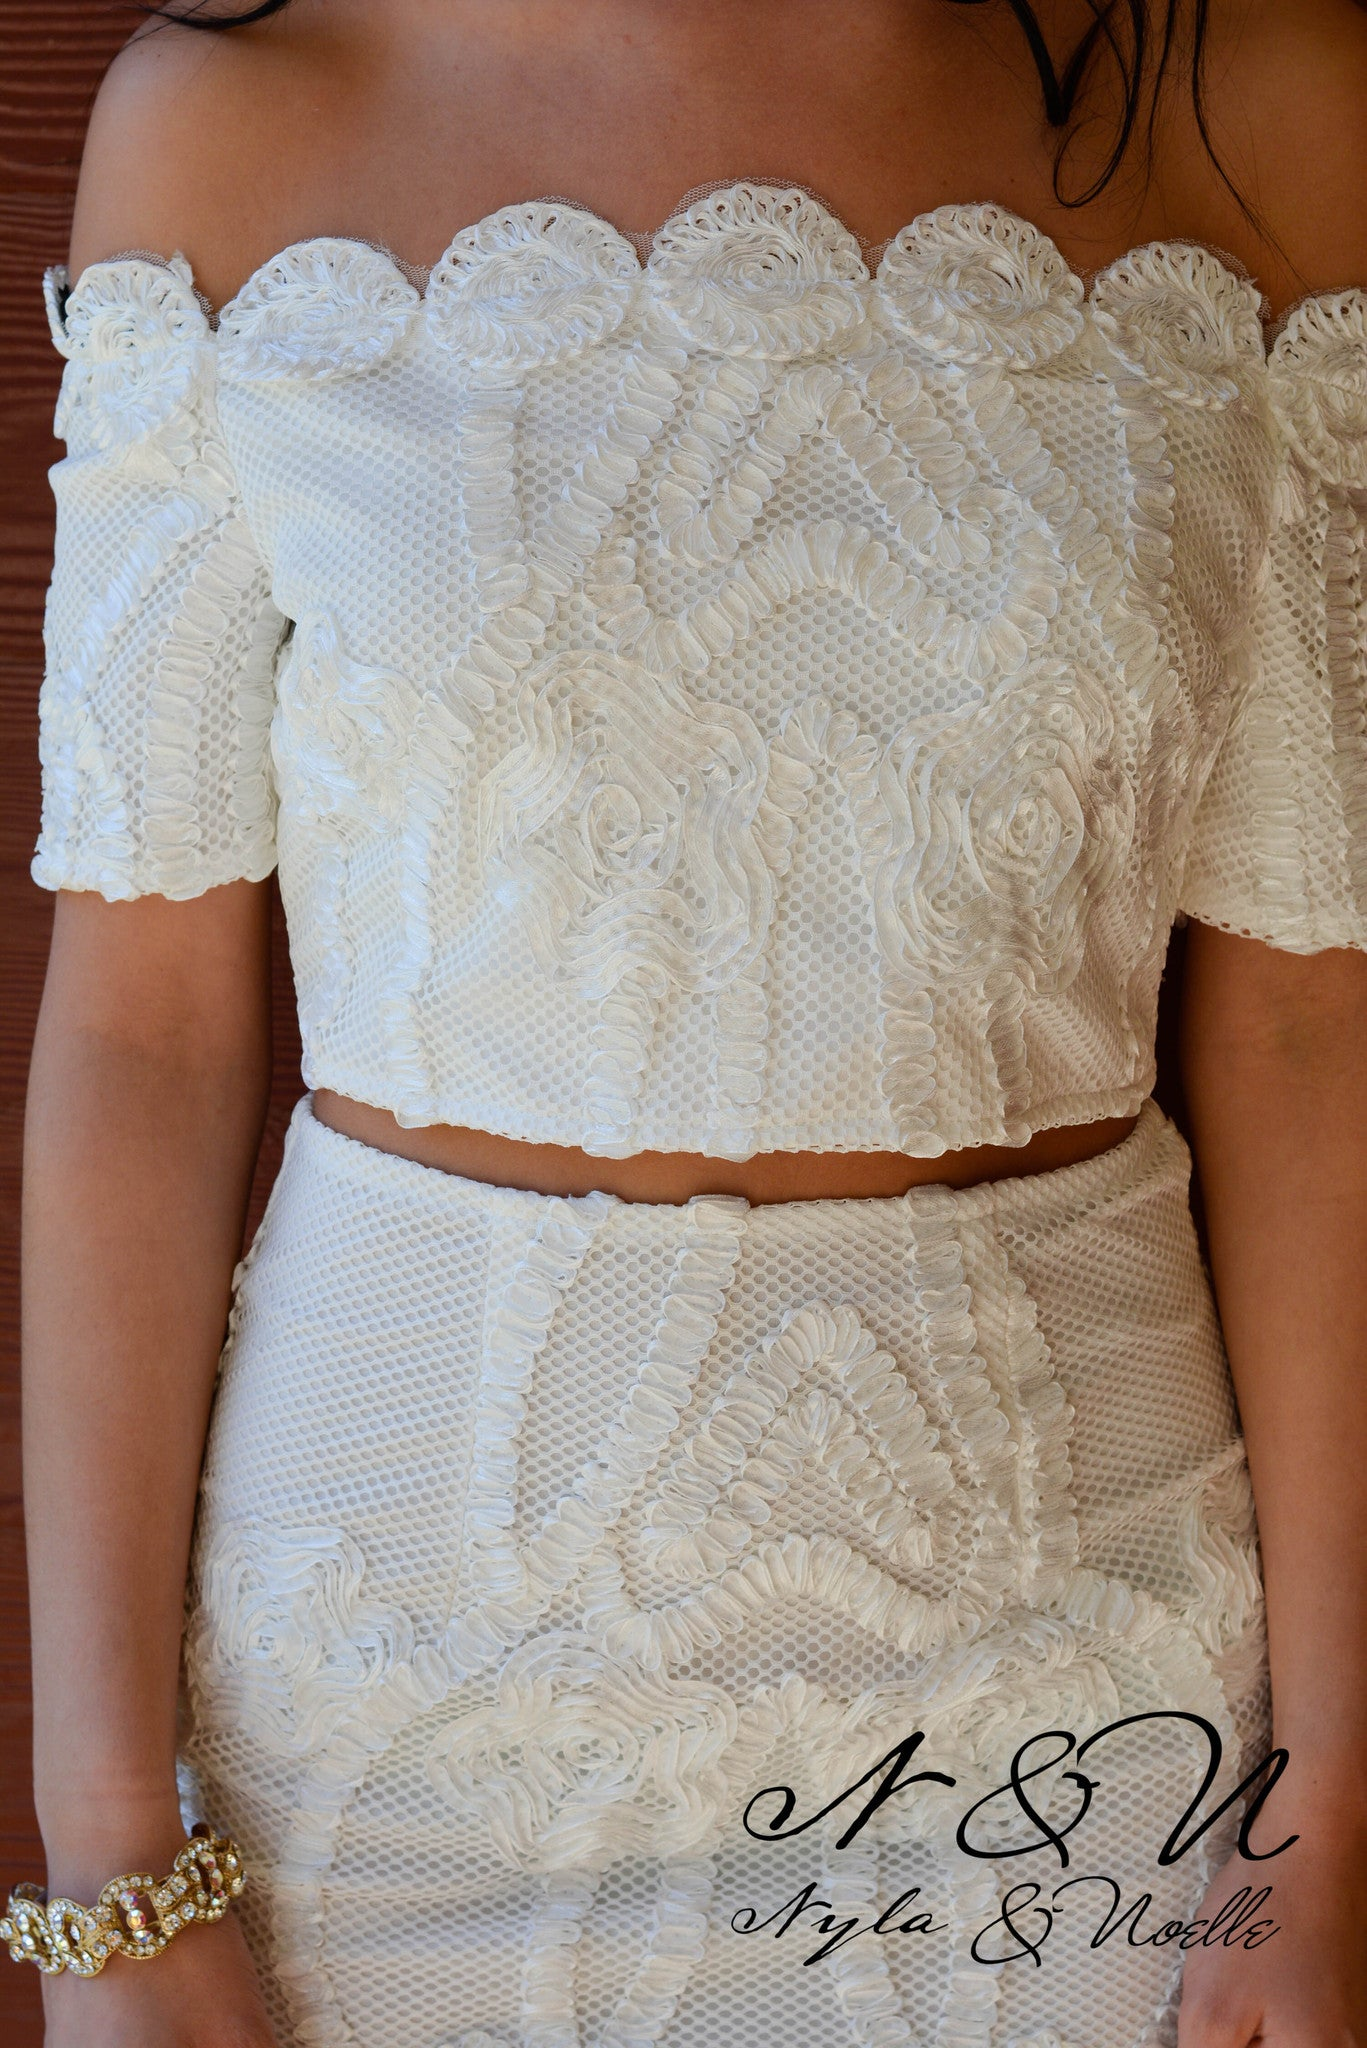 POSH IN LACE - White Lace Two Piece Cocktail Dress